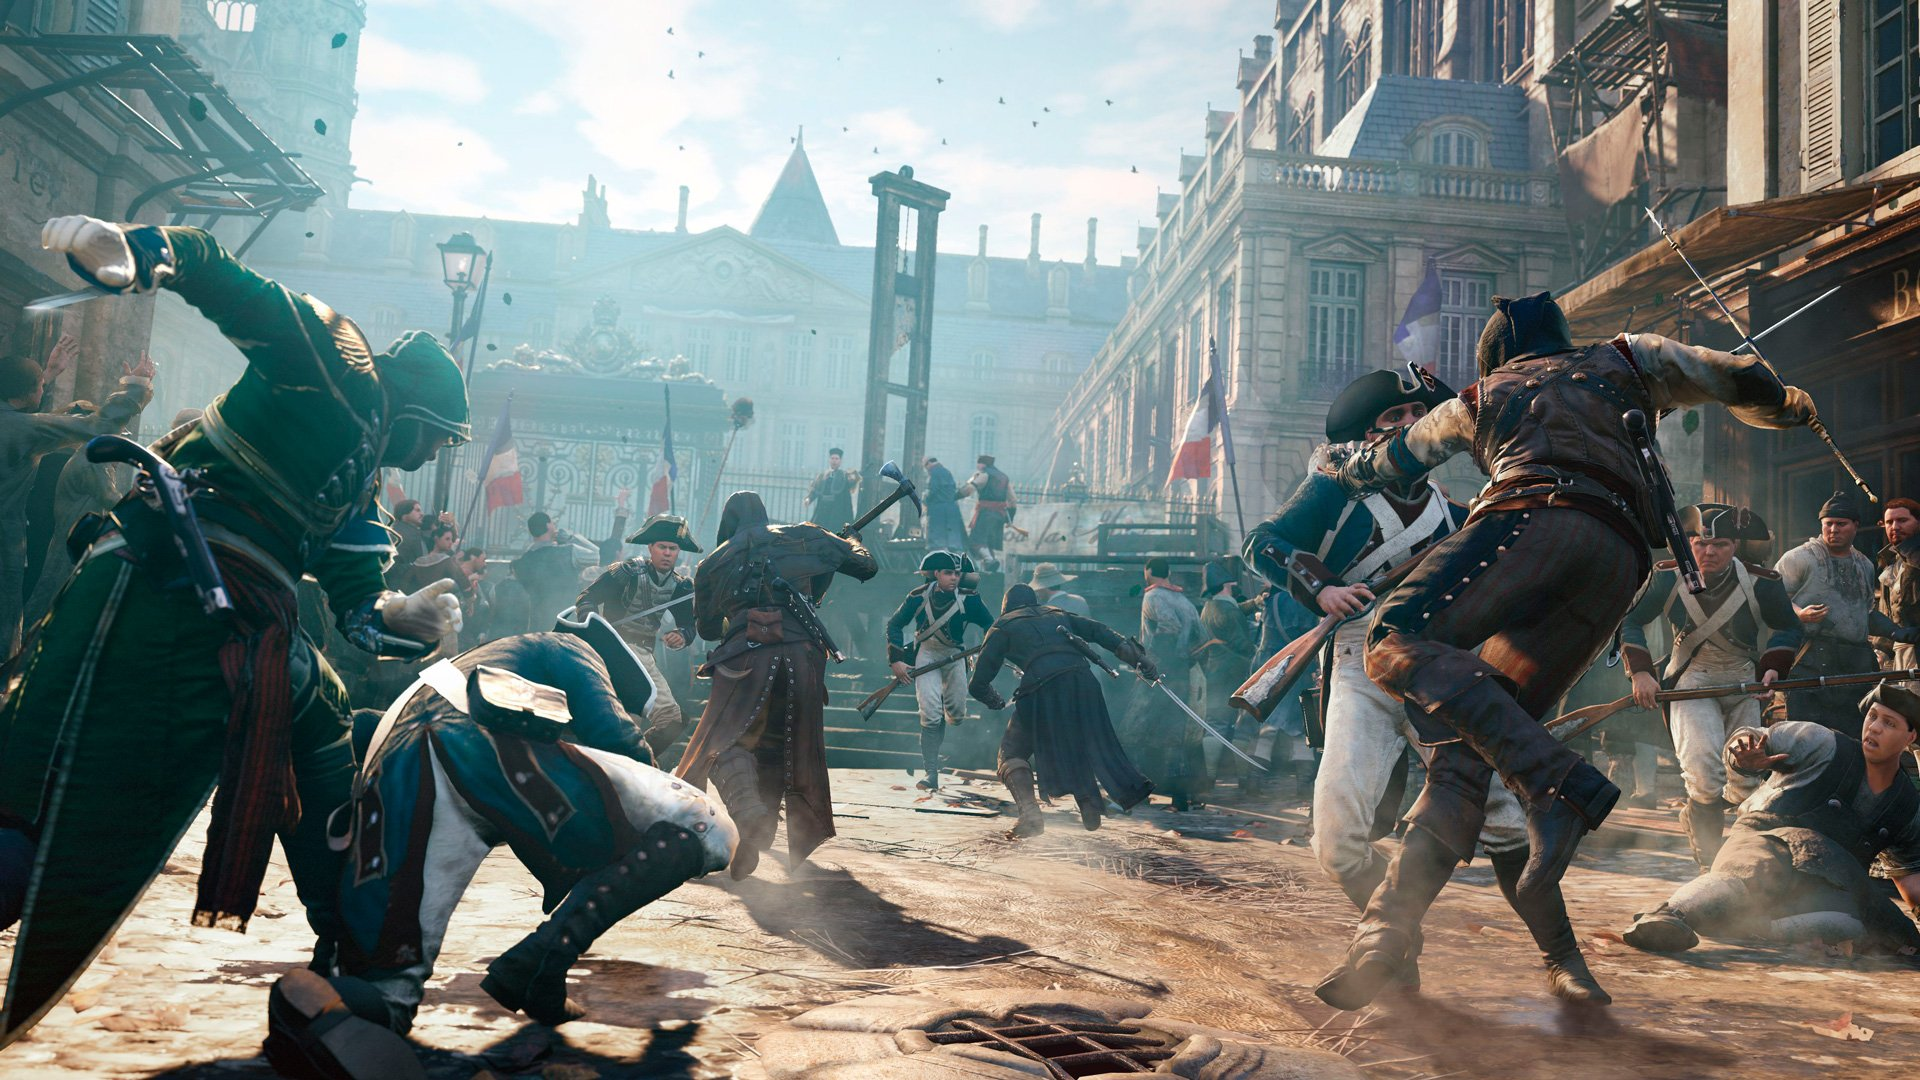 Скриншоты Assassin's Creed: Unity в 4K - Изображение 5